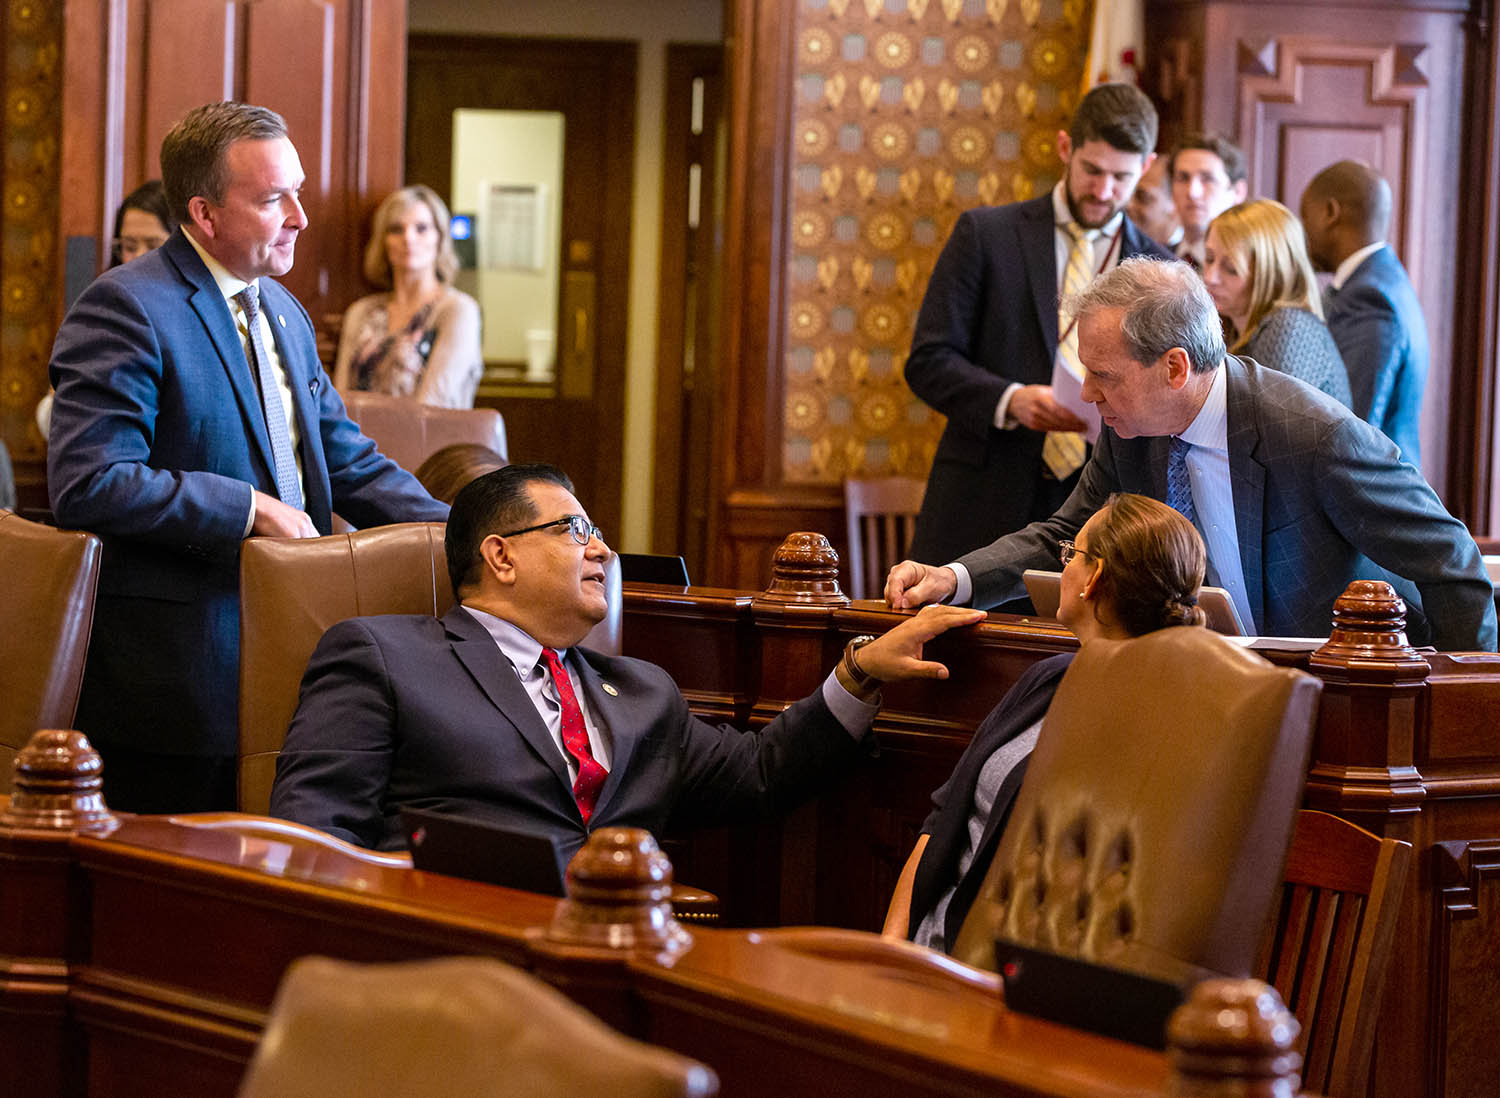 Illinois Senate President John Cullerton, D-Chicago, talks with Illinois State Sen. Andy Manar, D-Bunker Hill, and Illinois State Sen. Martin Sandoval, D-Chicago, after passing of the capital construction plan on the floor of the Illinois Senate during overtime of the Spring Session at the Illinois State Capitol, Sunday, June 2, 2019, in Springfield, Ill. [Justin L. Fowler/The State Journal-Register]